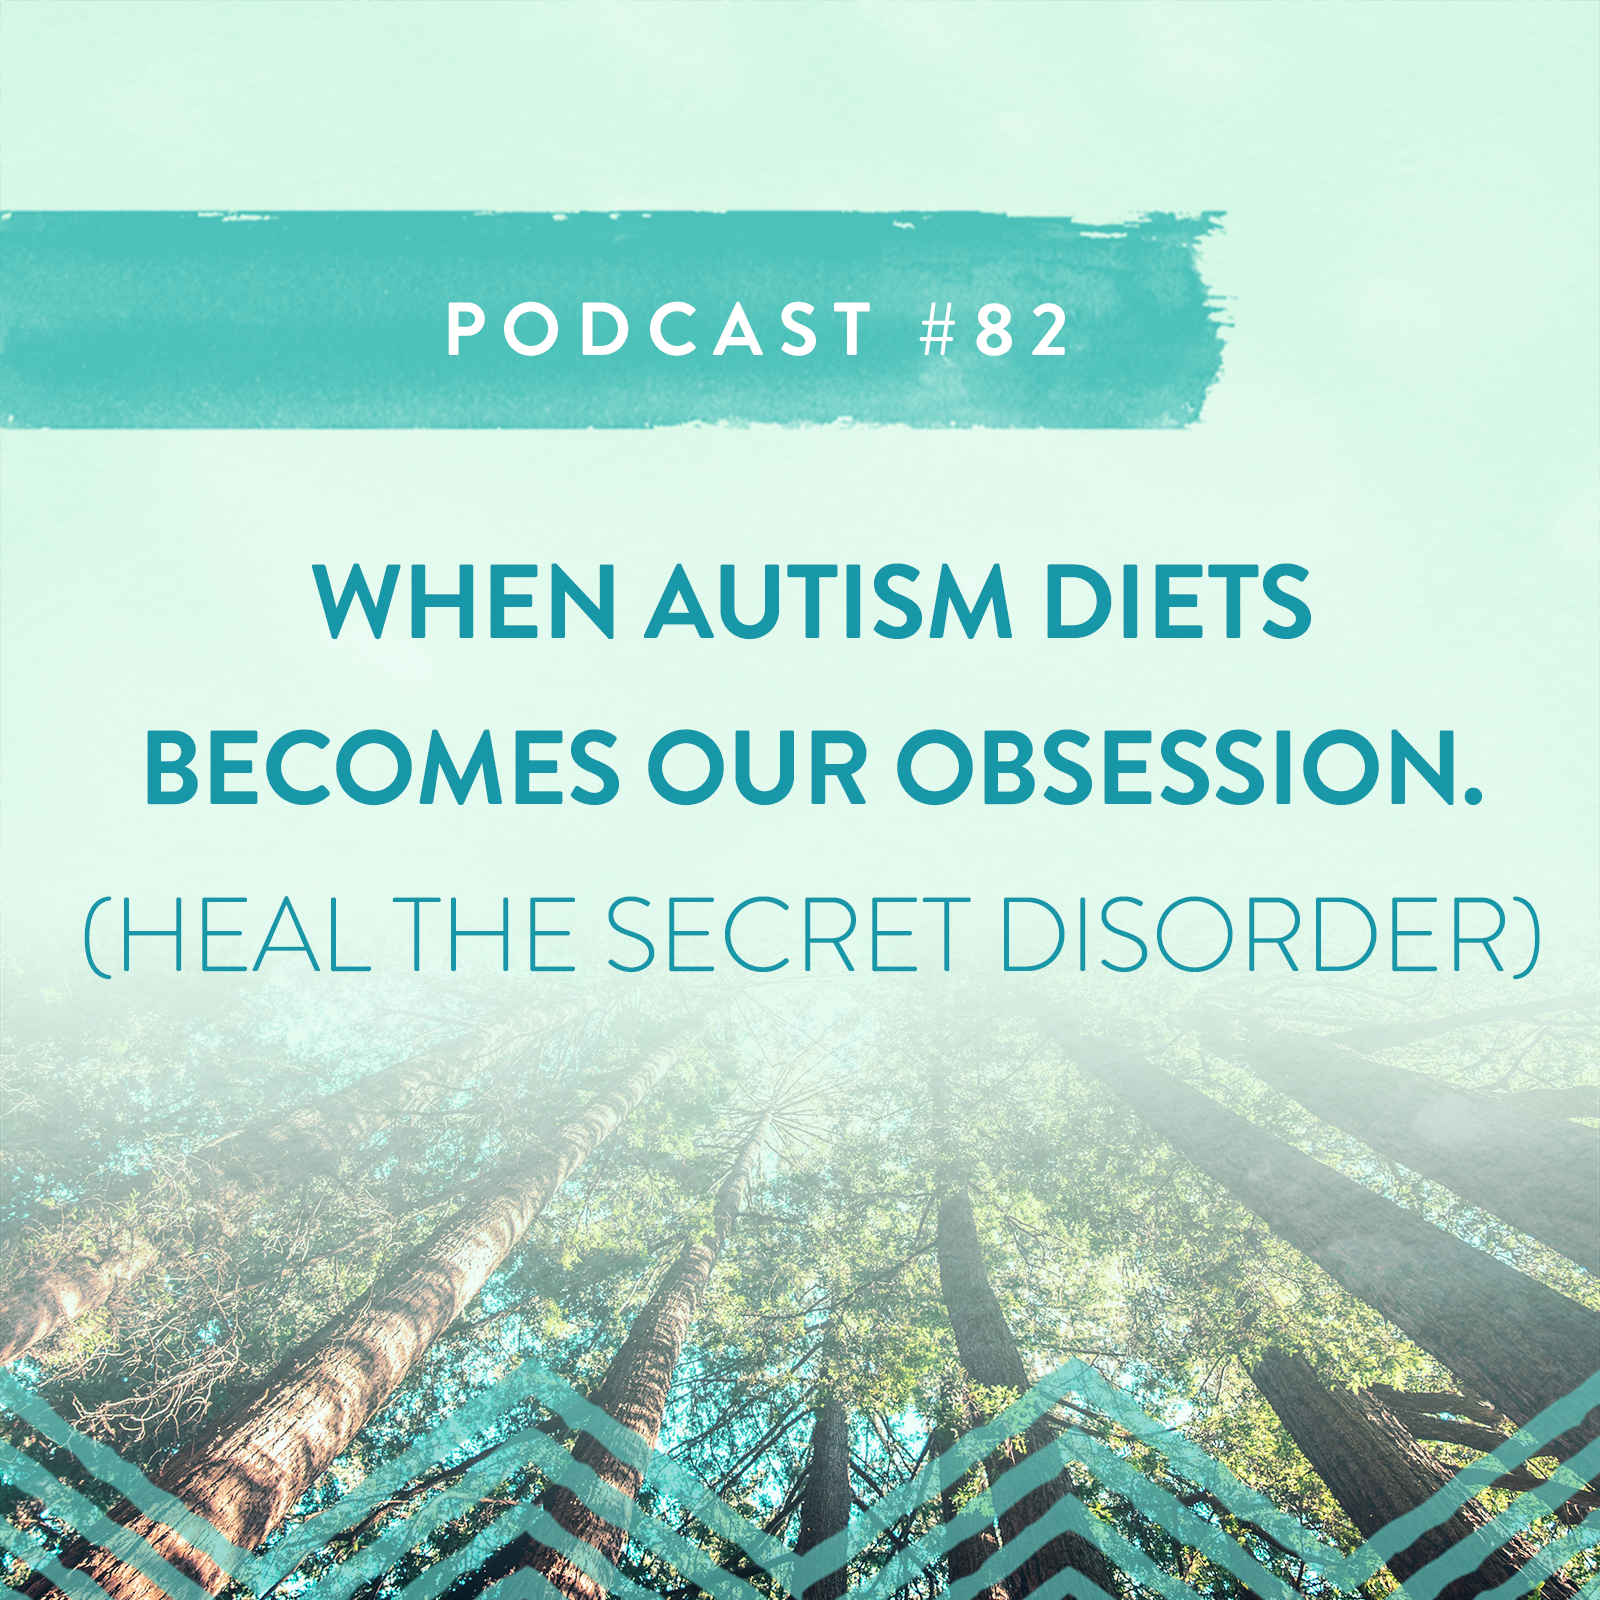 WHEN AUTISM DIETS BECOME OUR OBSESSION